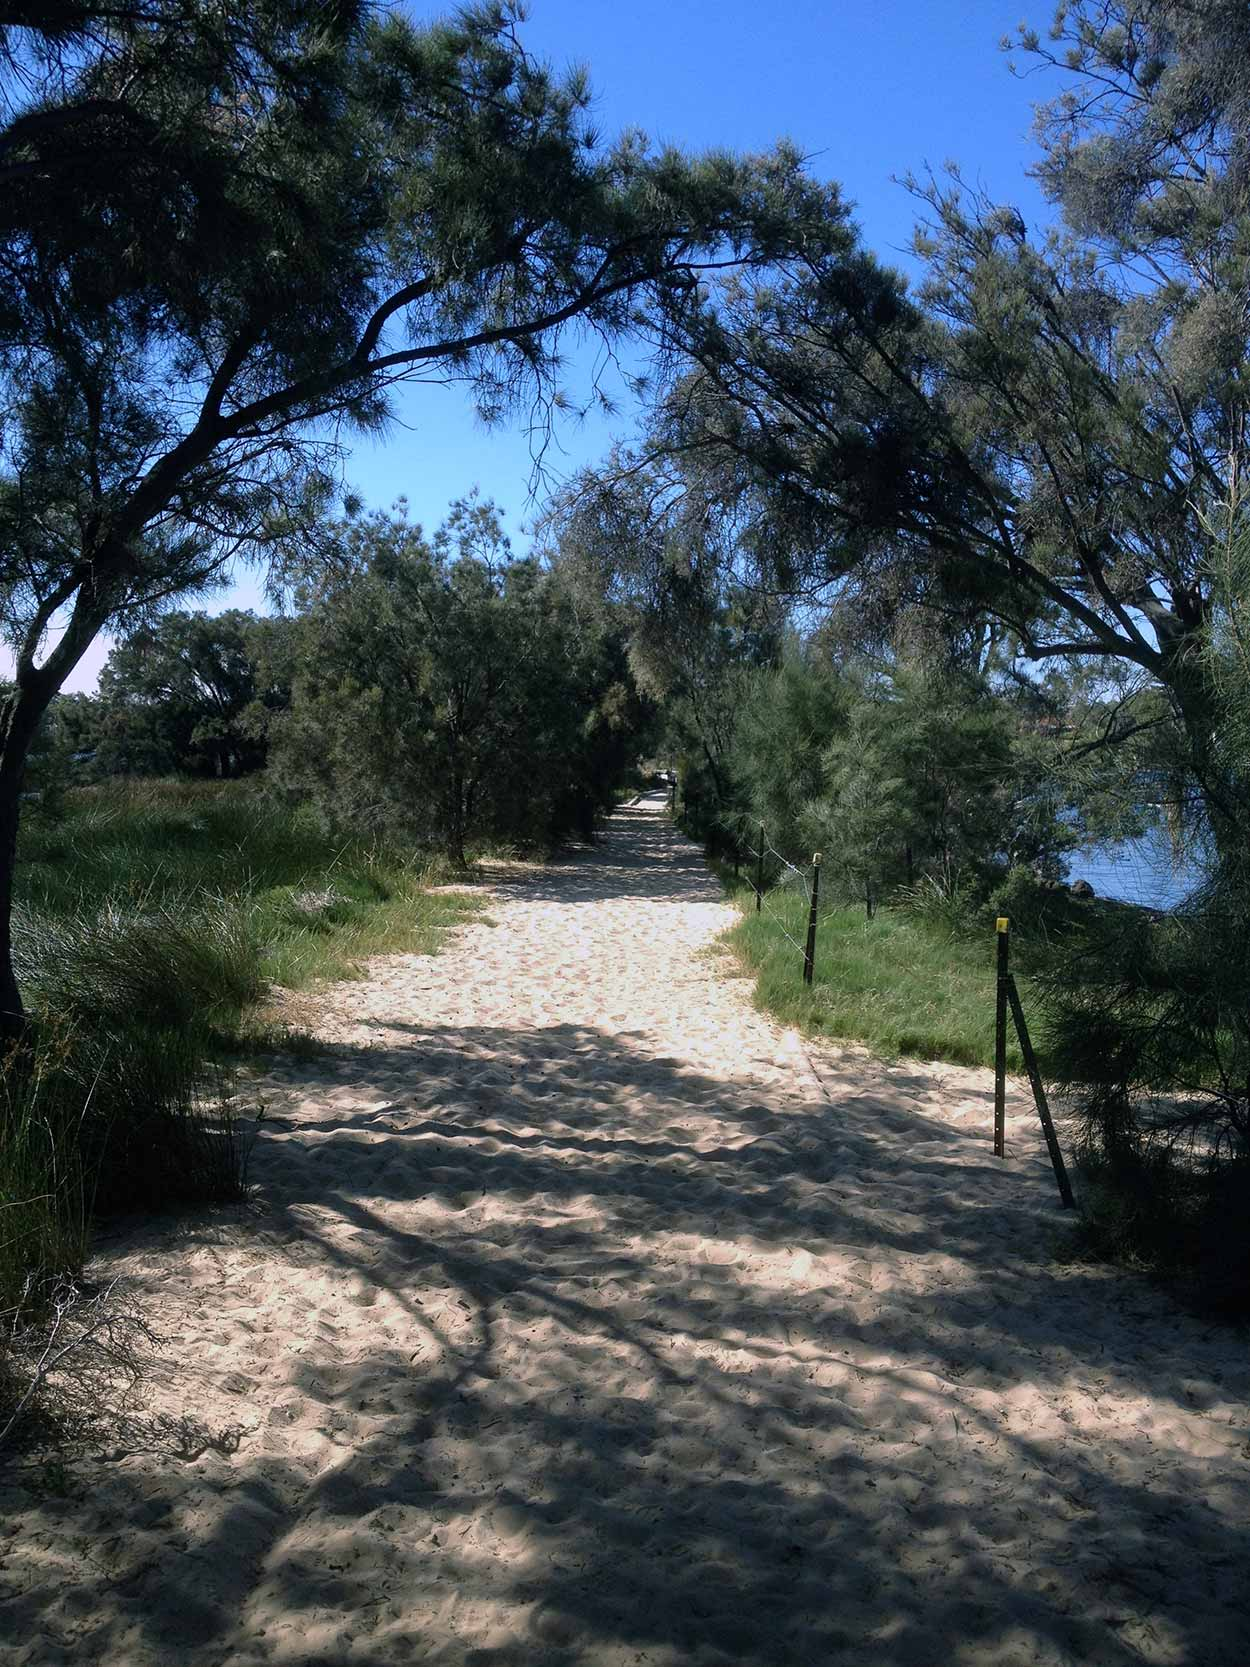 Wetland Reserve at the eastern end of Salter Point Parade, Canning River, Perth, Western Australia